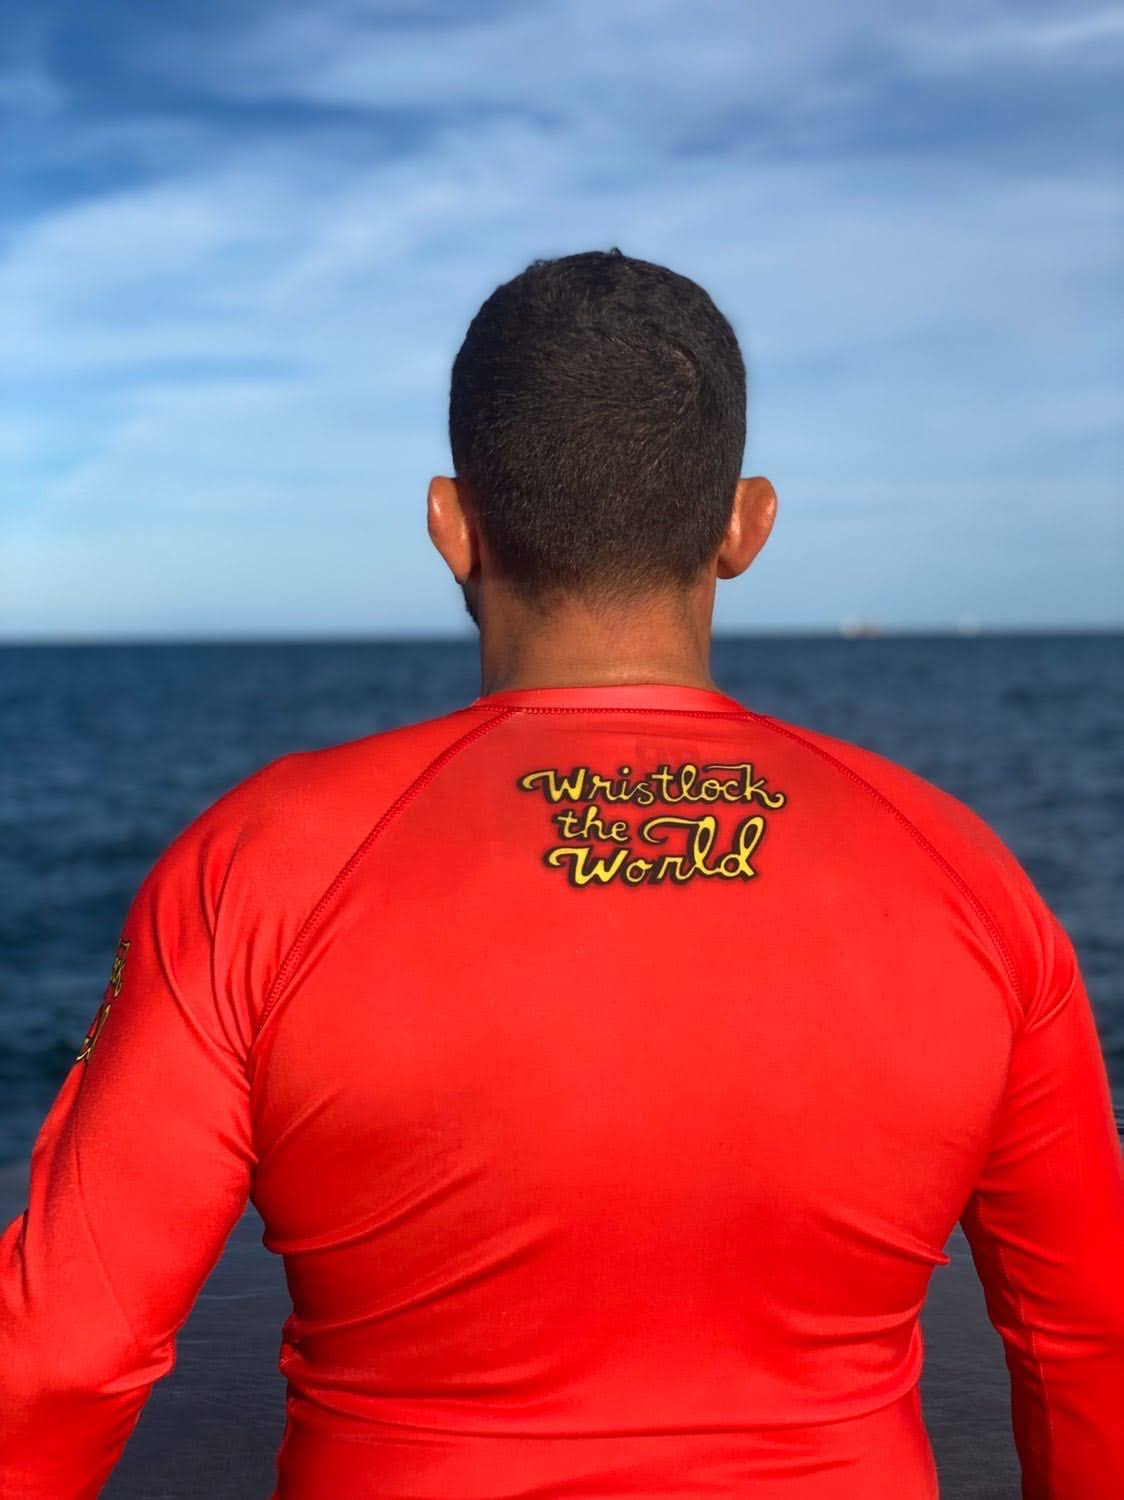 WRISTLOCK THE WORLD Rashguard - Made in the USA